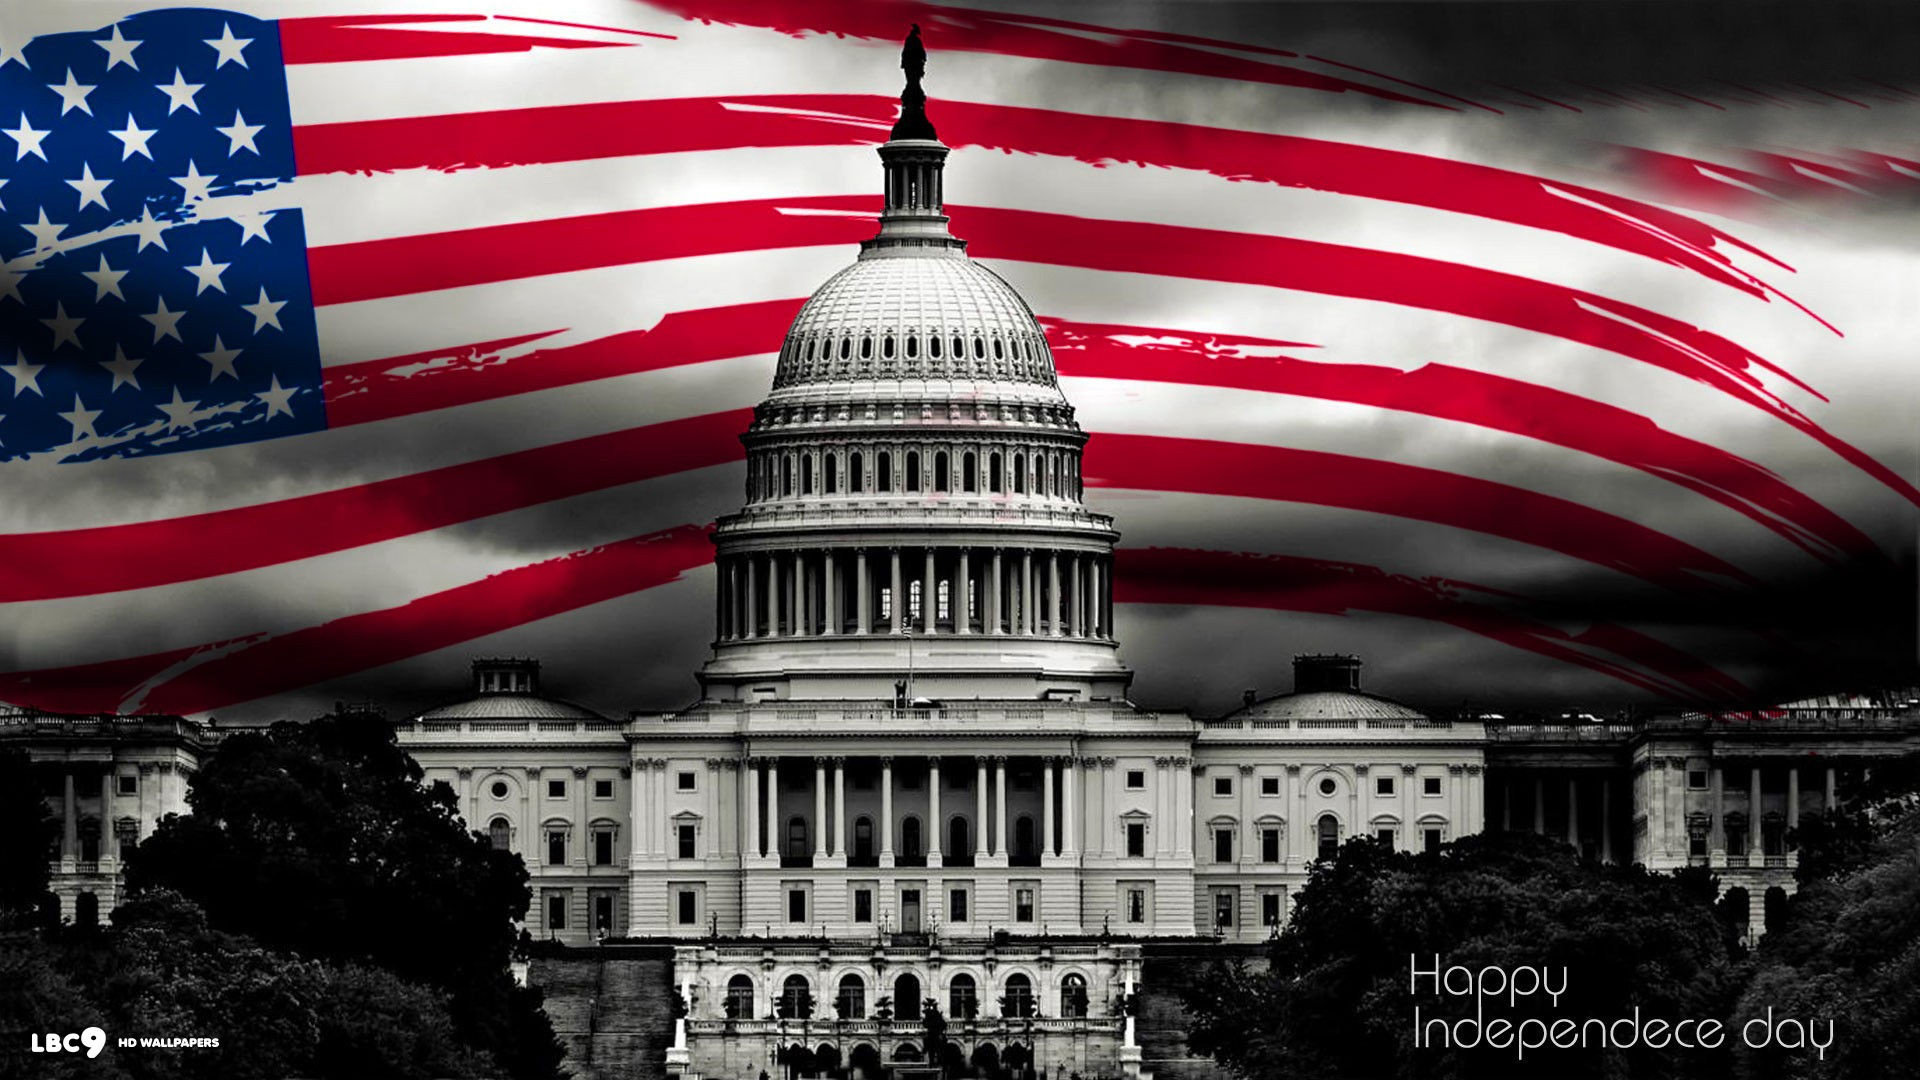 happy independence day 4th july holiday us flag white house holiday desktop  wallpaper